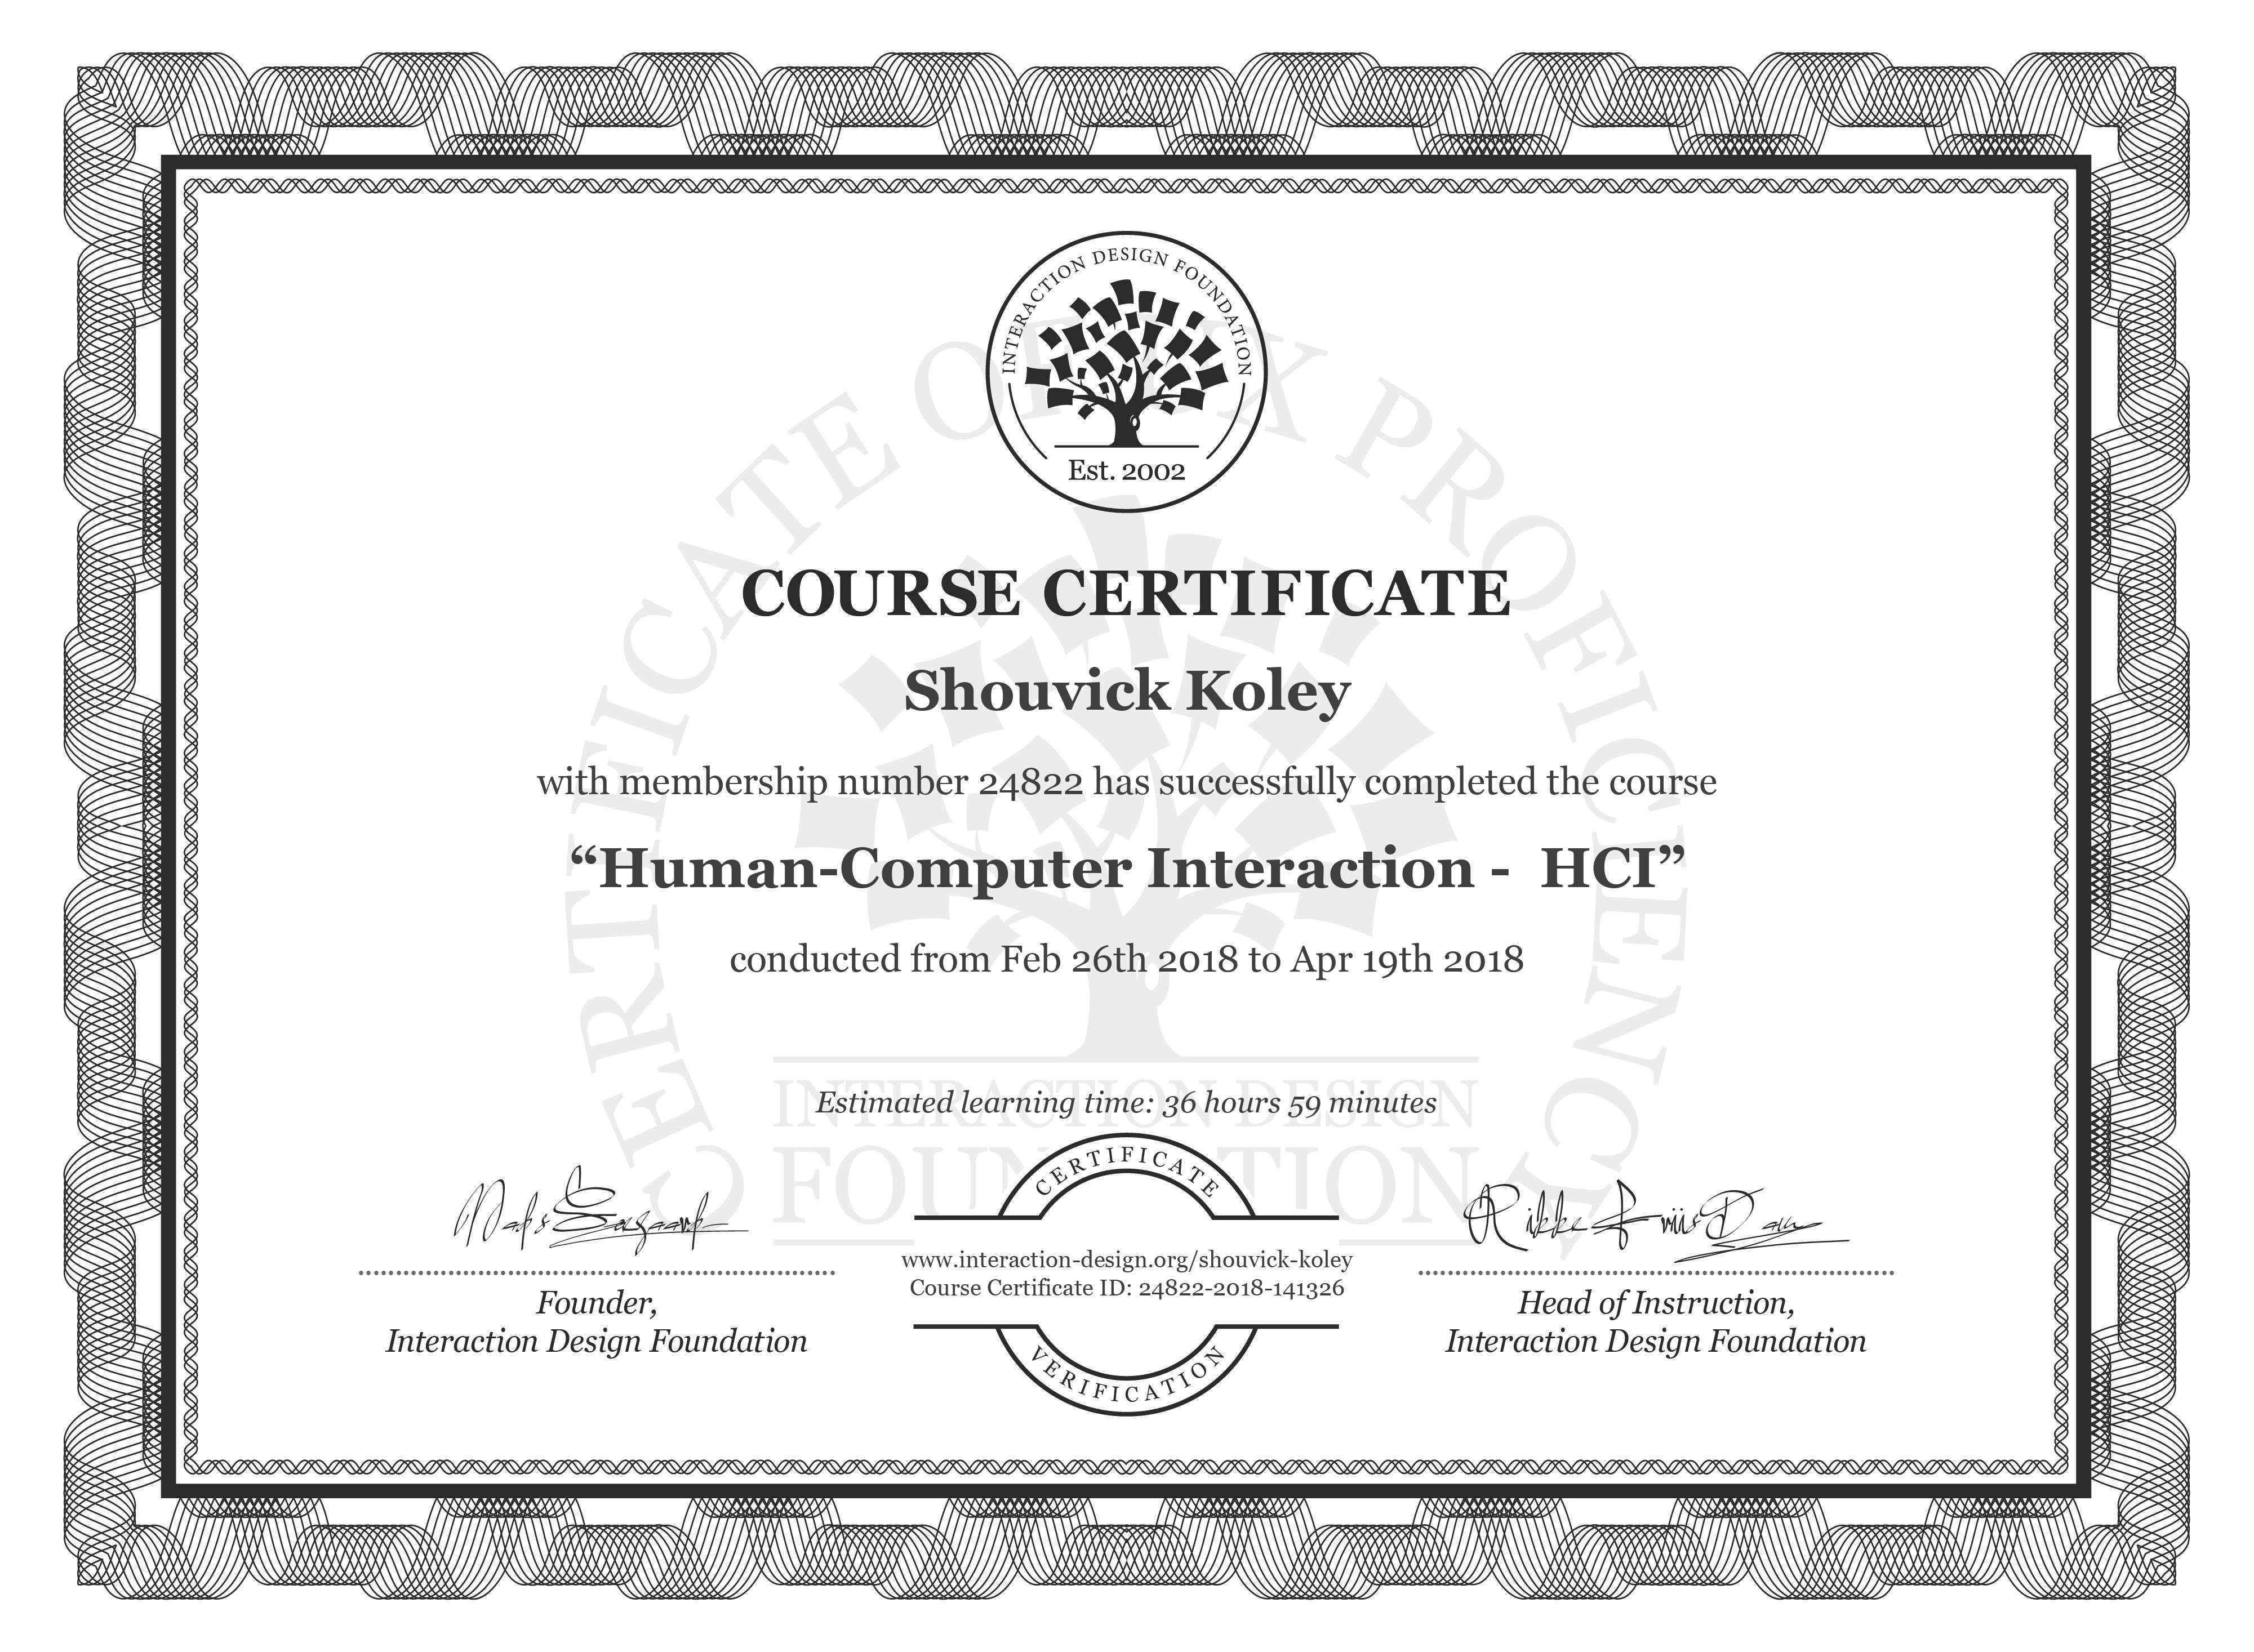 Shouvick Koley: Course Certificate - Human-Computer Interaction -  HCI